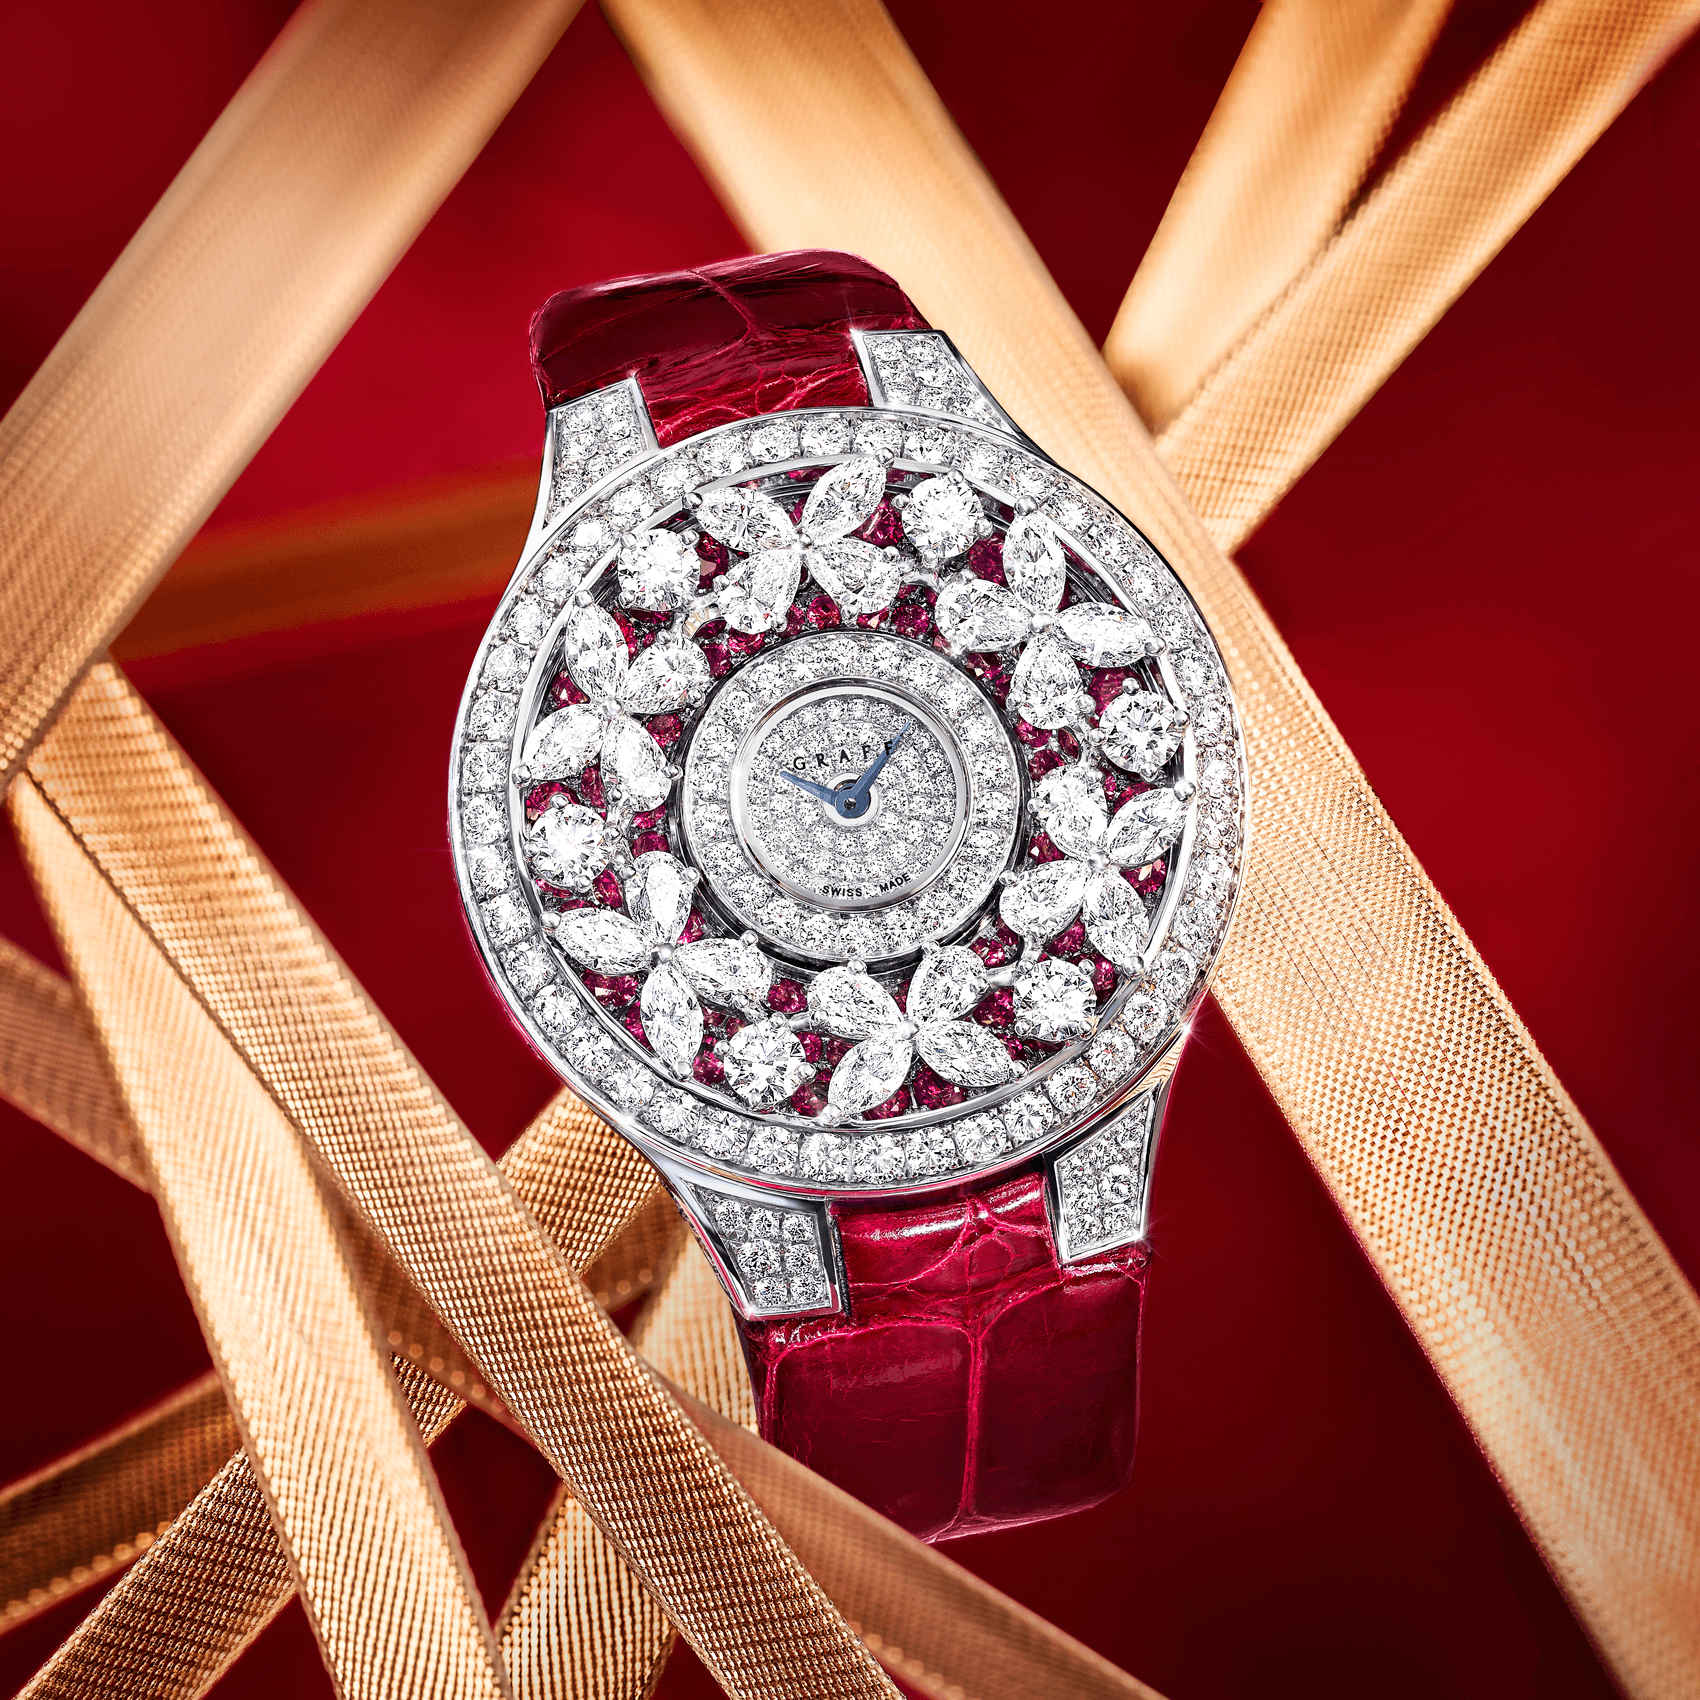 A Graff Classic Butterfly Diamond on Ruby Watch with red leather Strap on a red background with gold ribbons